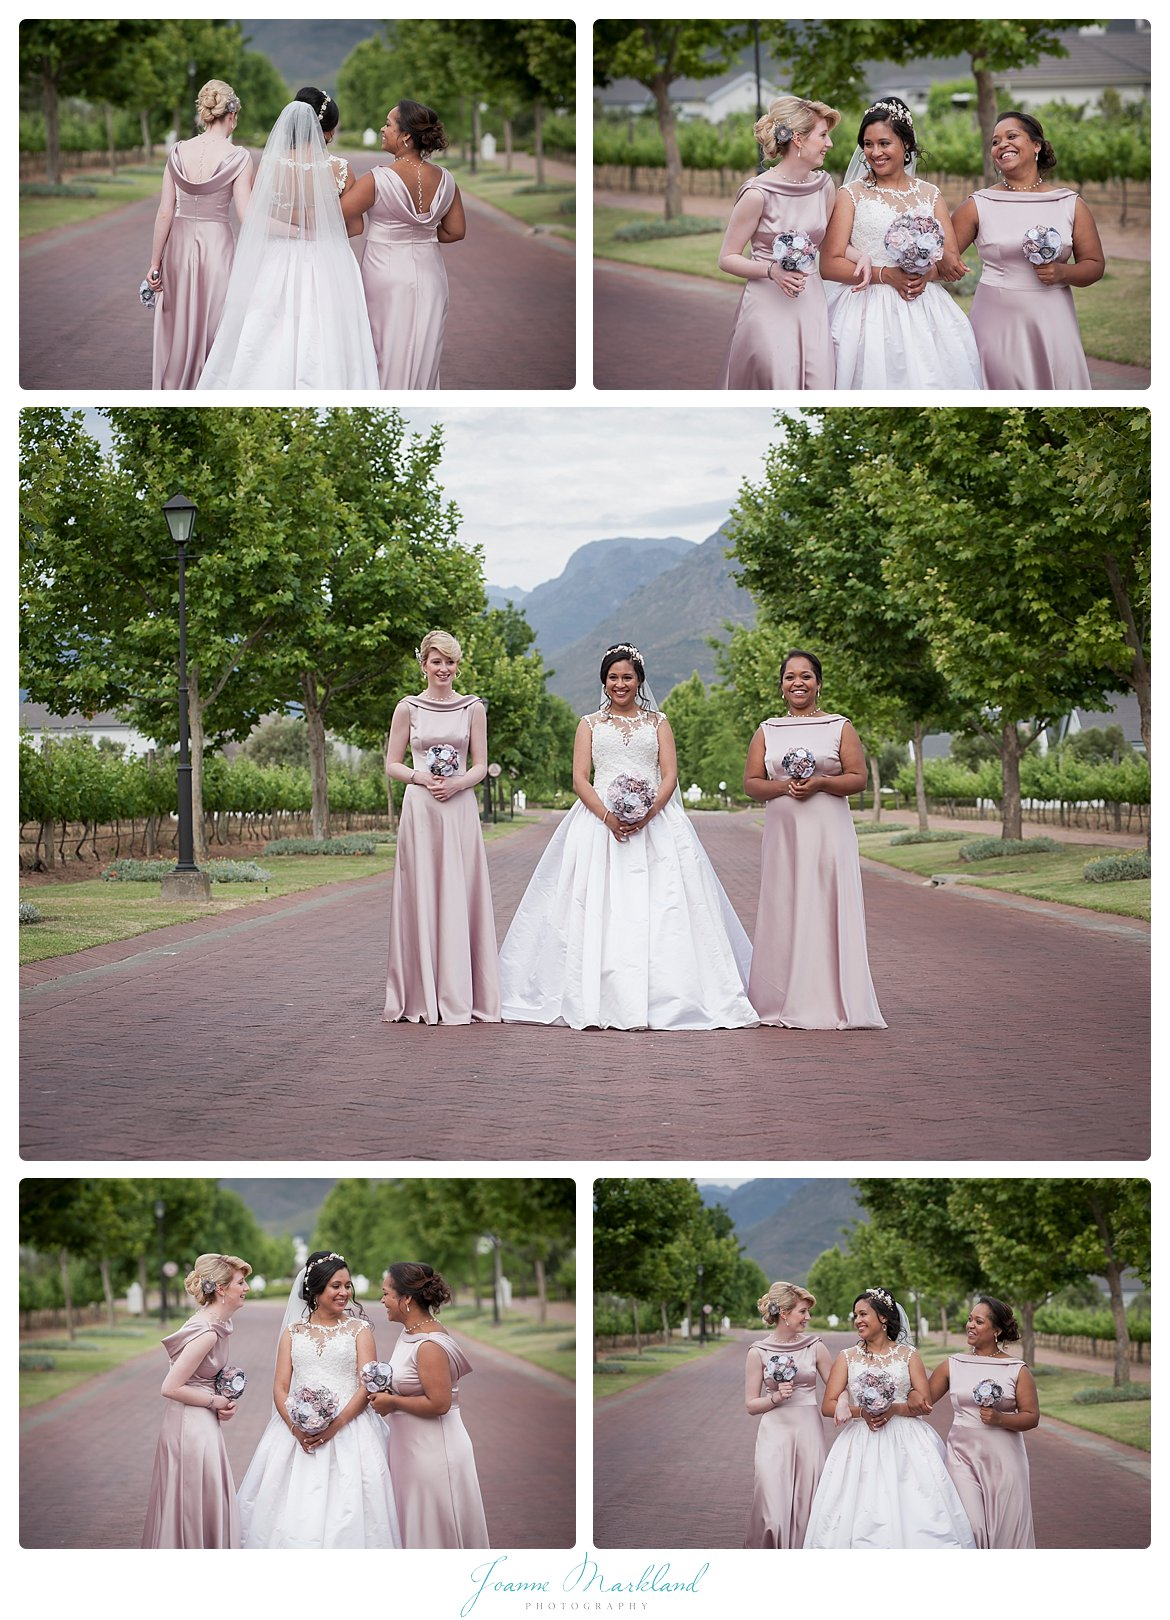 Val_de_vie_wedding_joanne_markland_photography_paarl-040